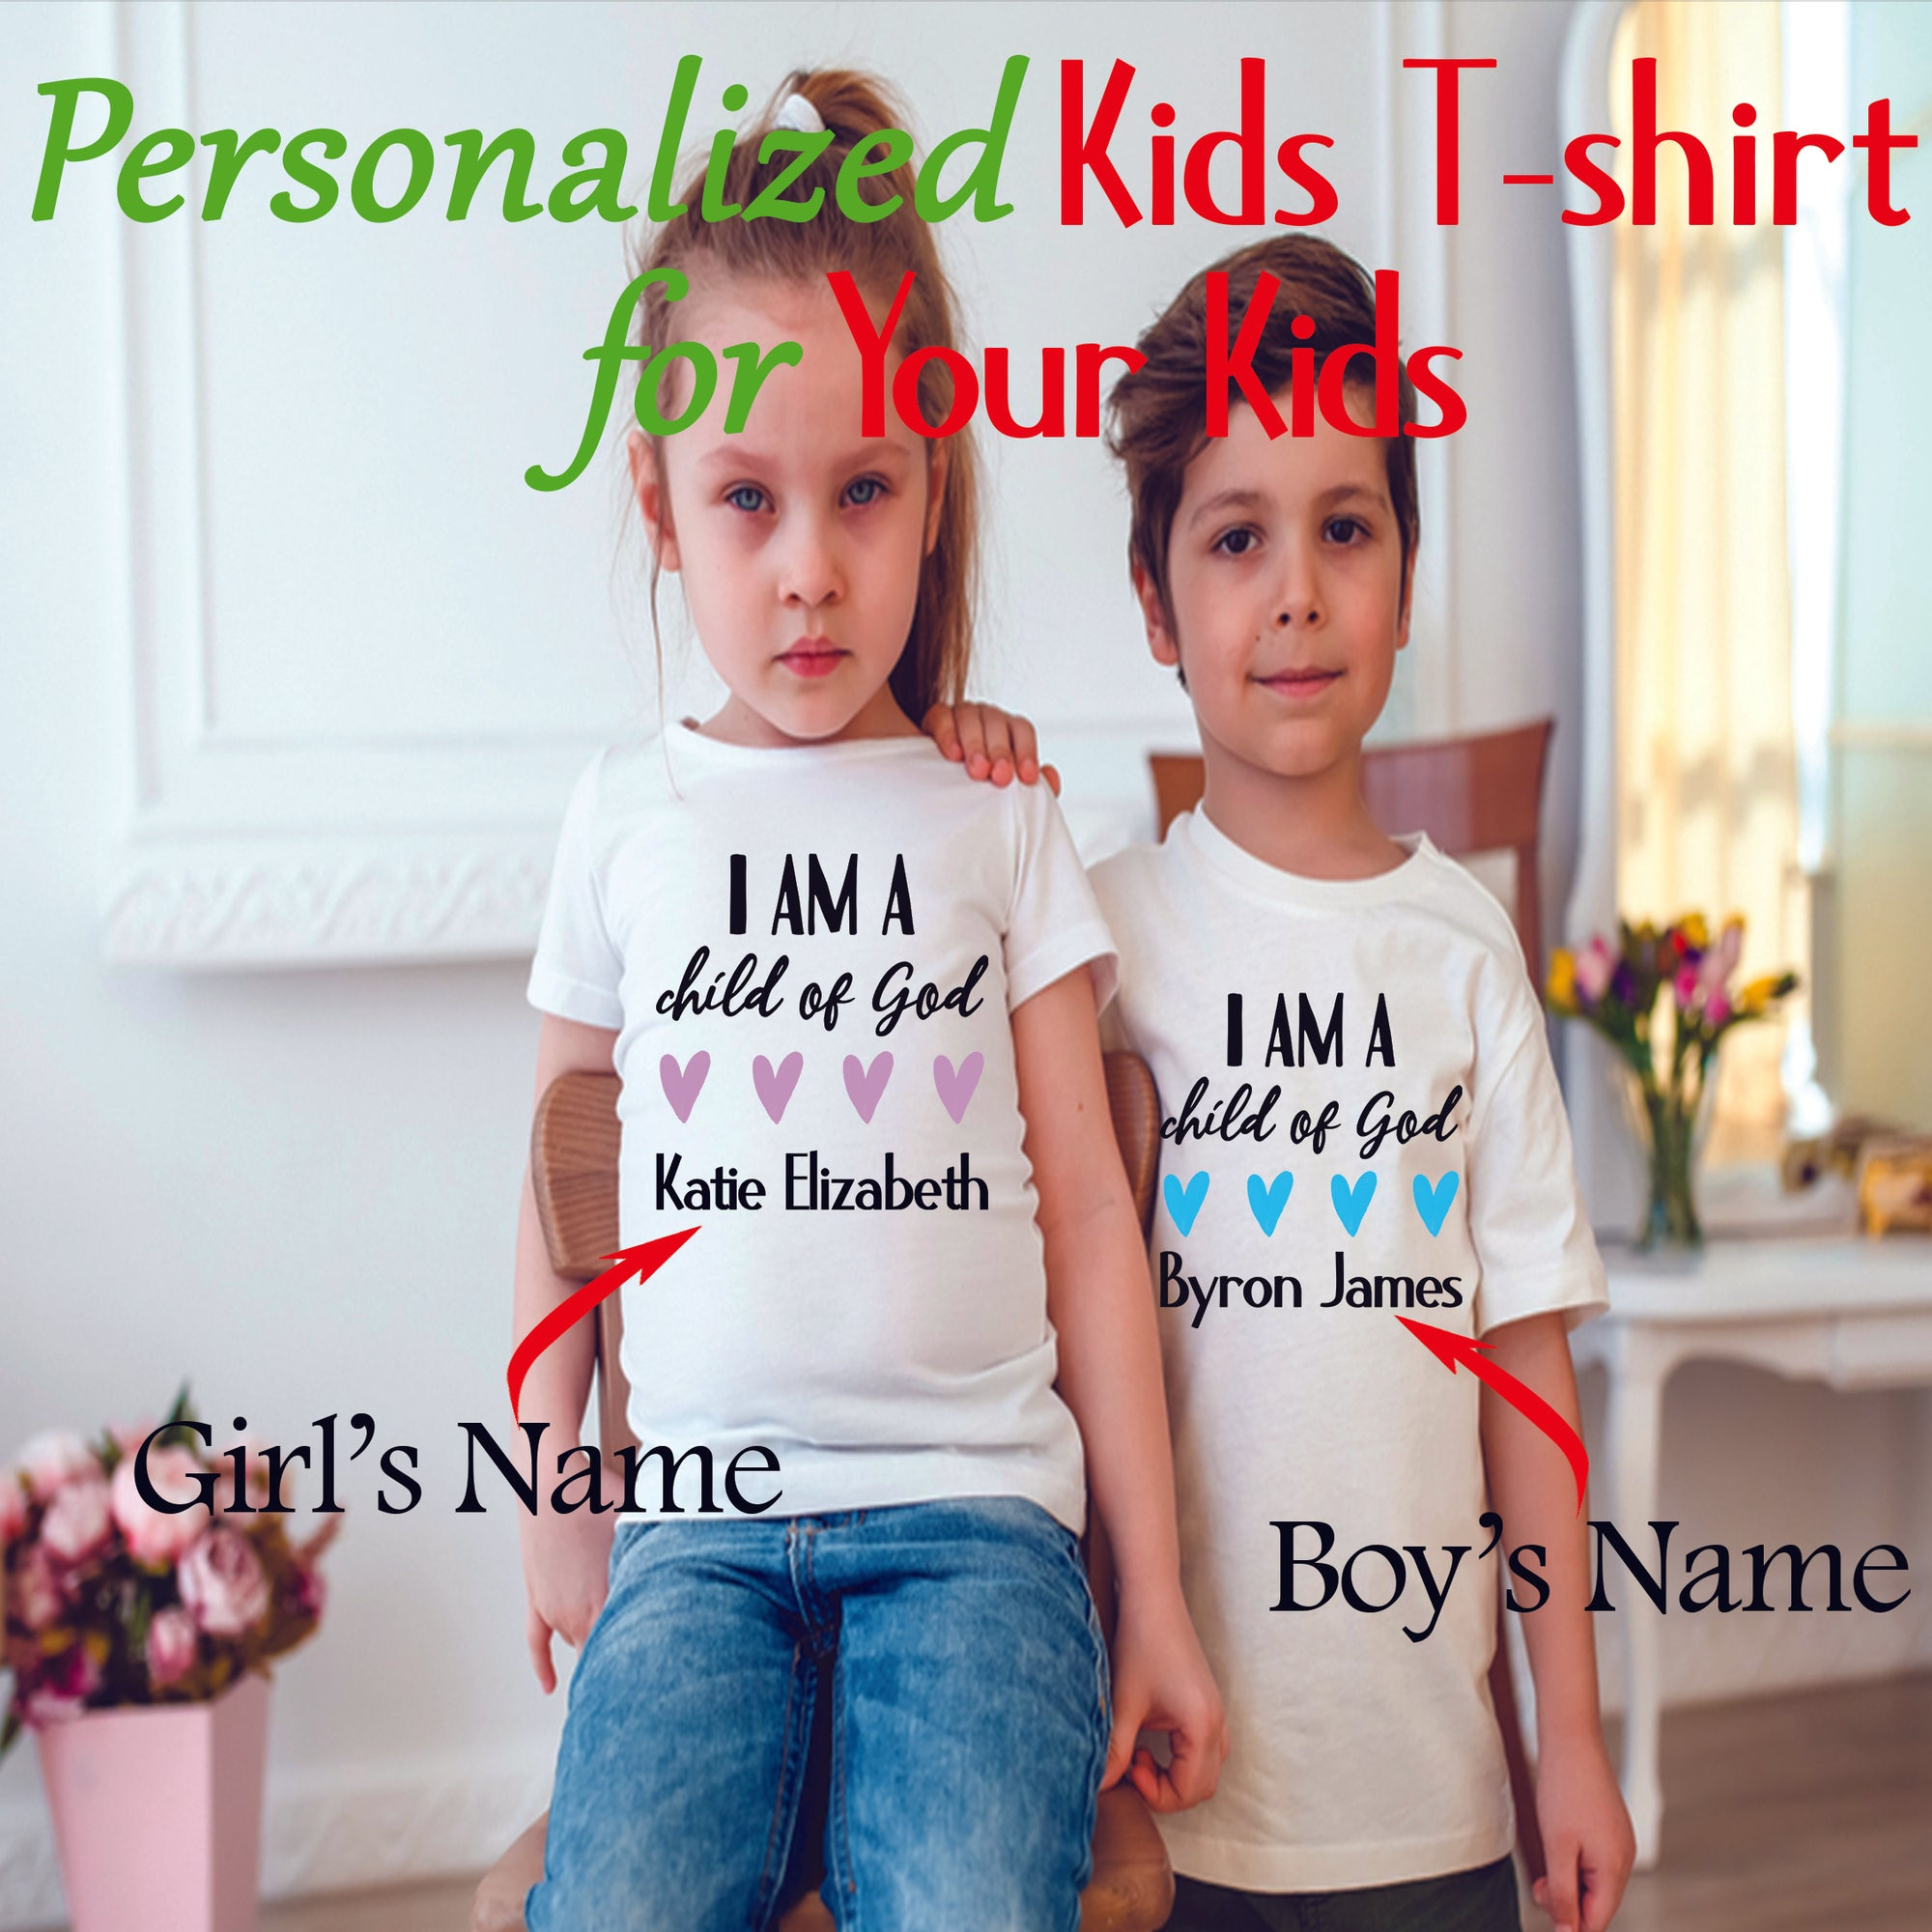 PERSONALIZED KIDS T-SHIRT - UPLOAD YOUR KID'S NAME